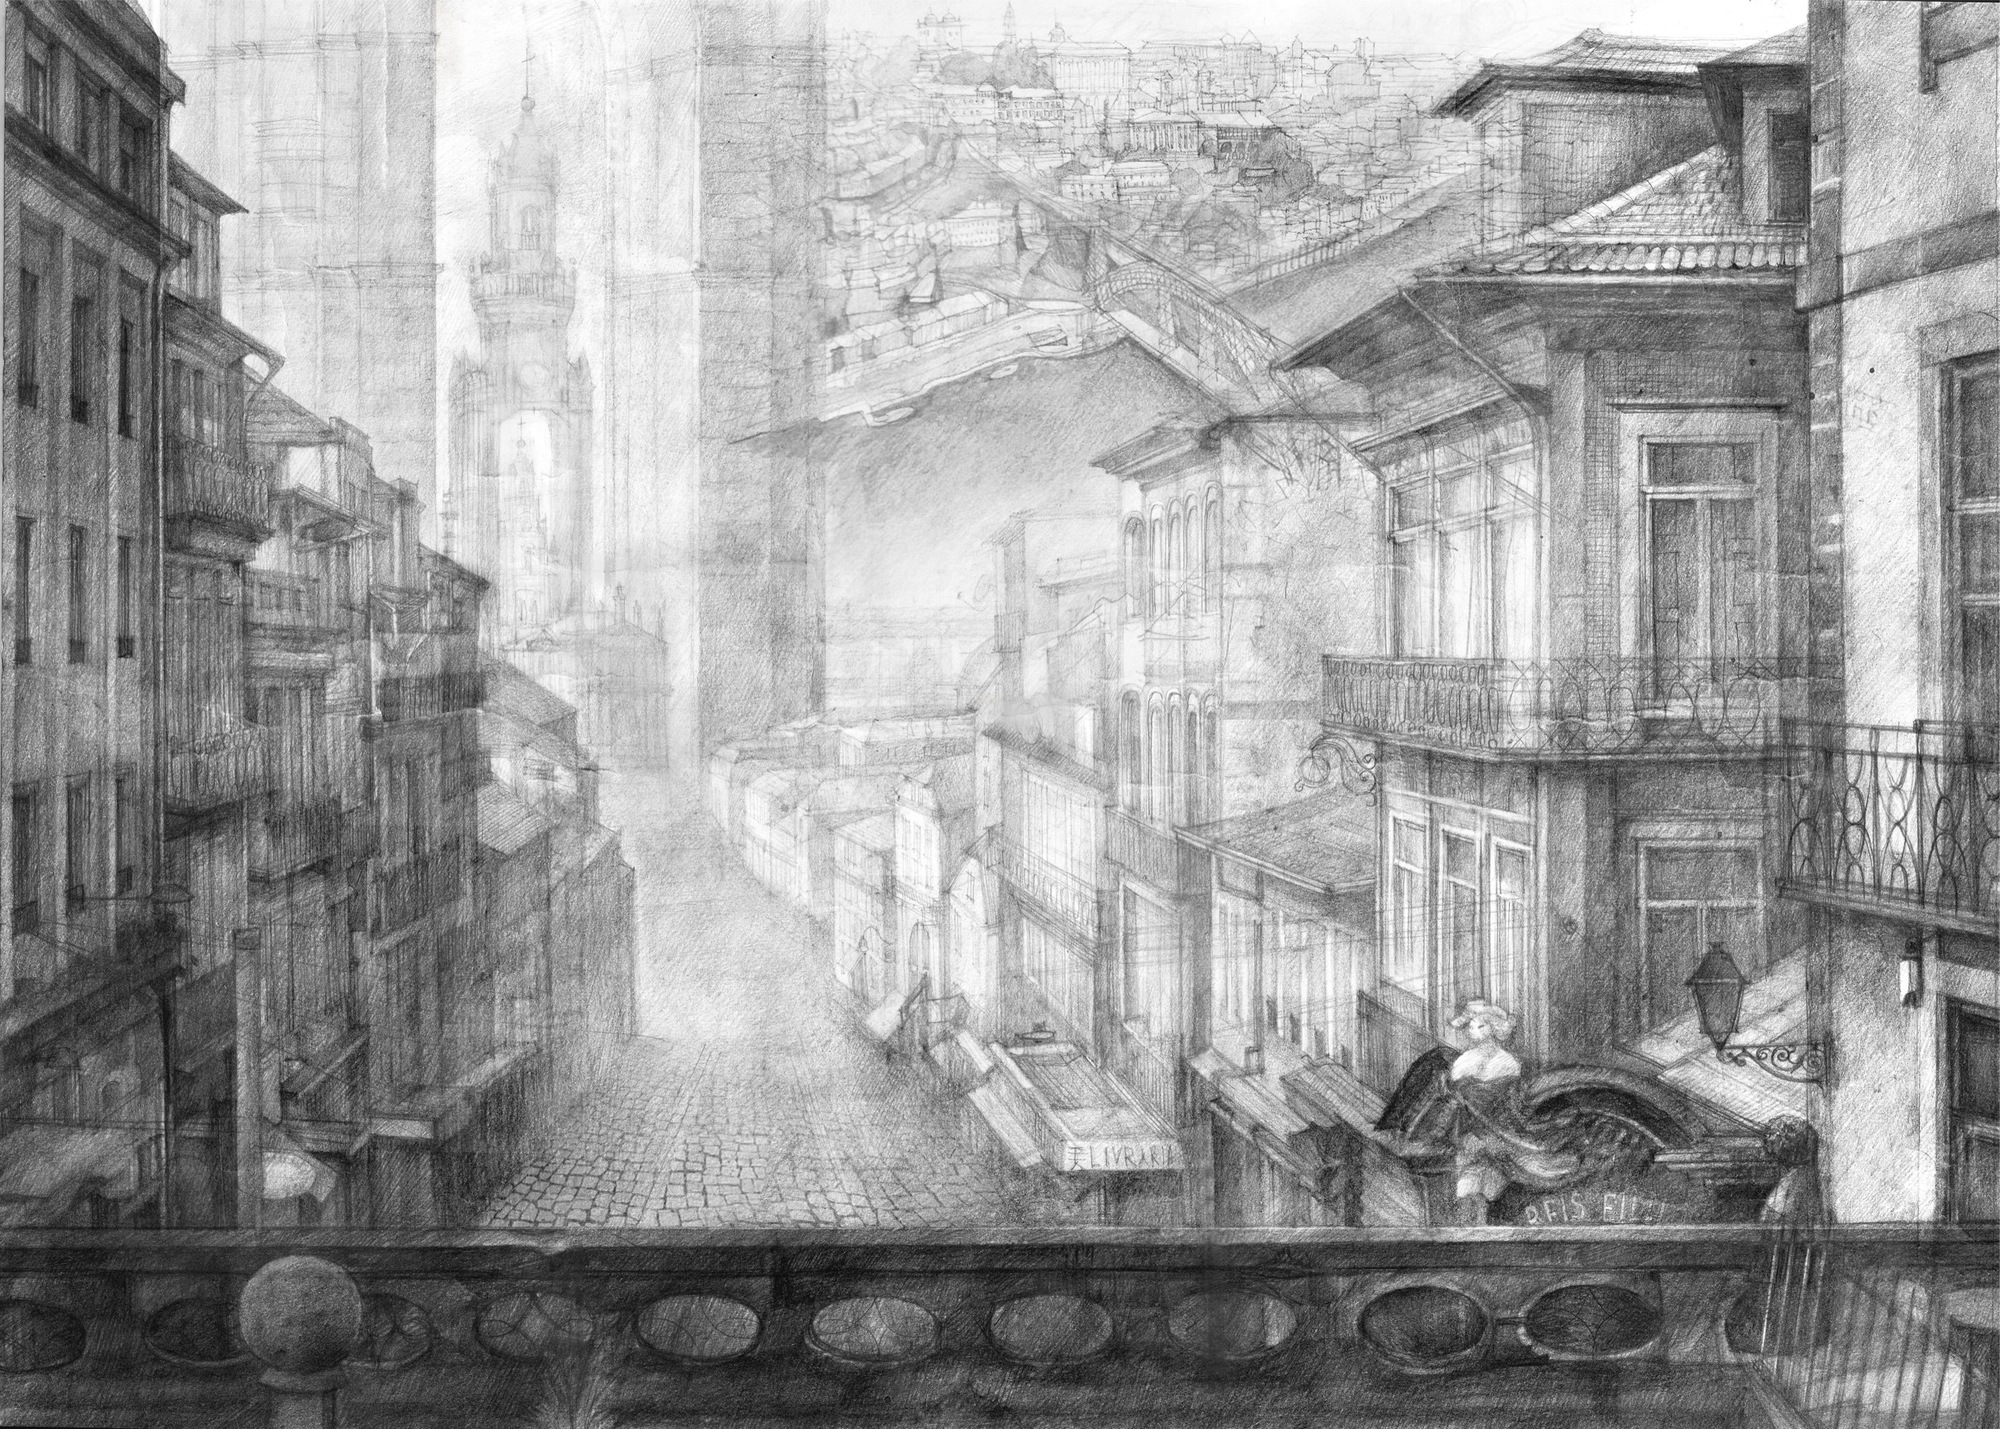 Stellar drawings selected as winners of wafs inaugural architecture